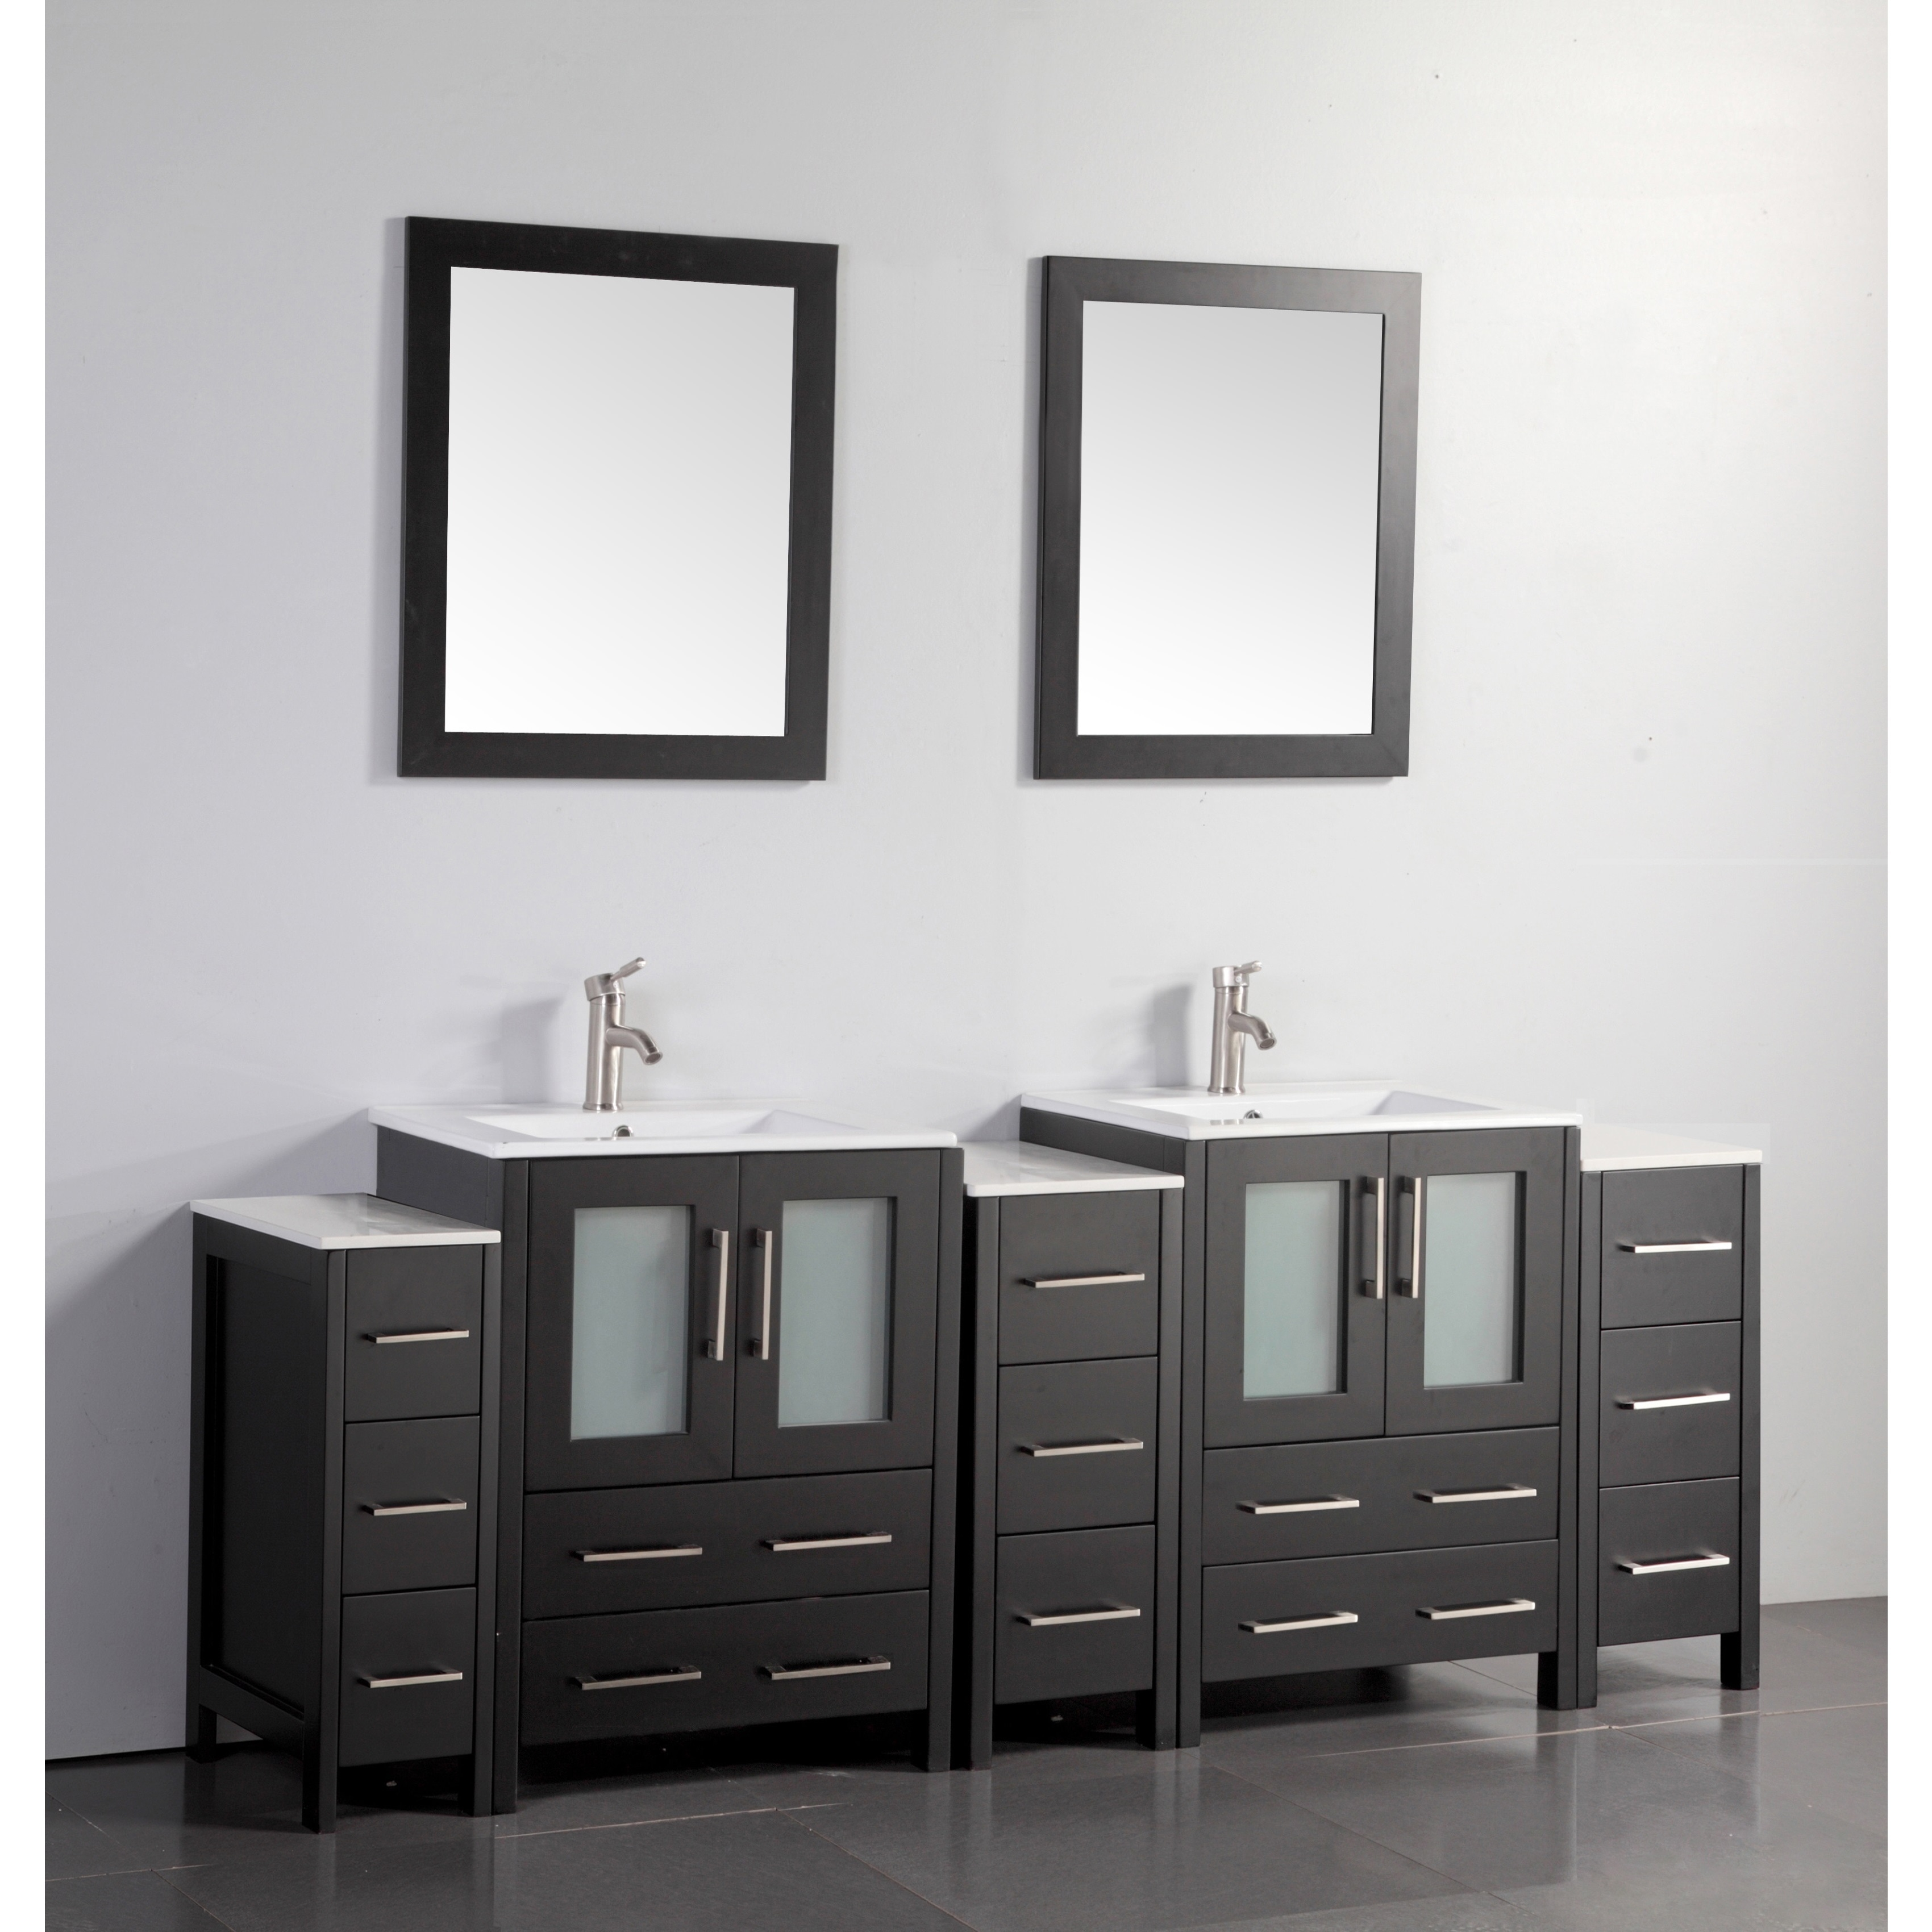 84 inch vanity top double sink. Martinkeeis Me 100 84 Inch Vanity Top Double Sink Images Cool Photos Best  inspiration home Home Design Plan The Image Collections